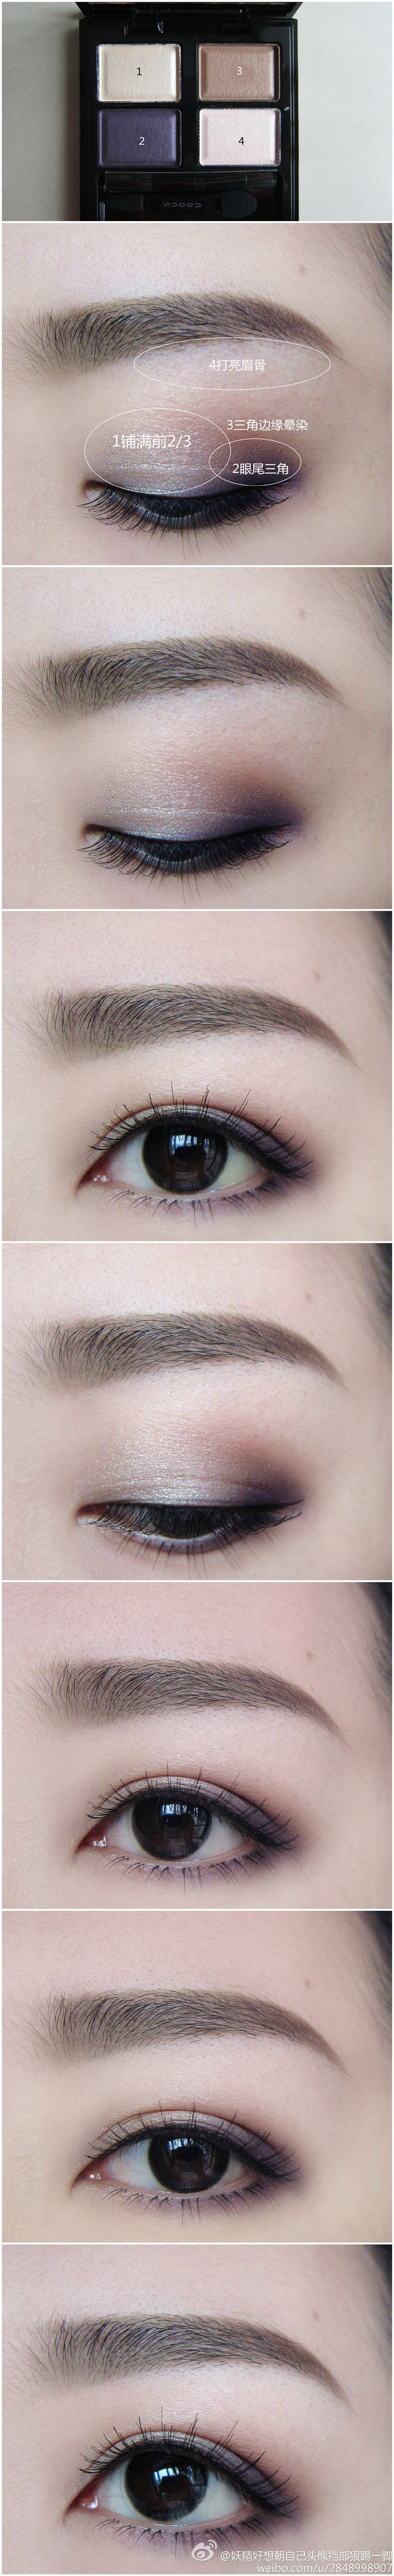 Simple yet smokey eyes